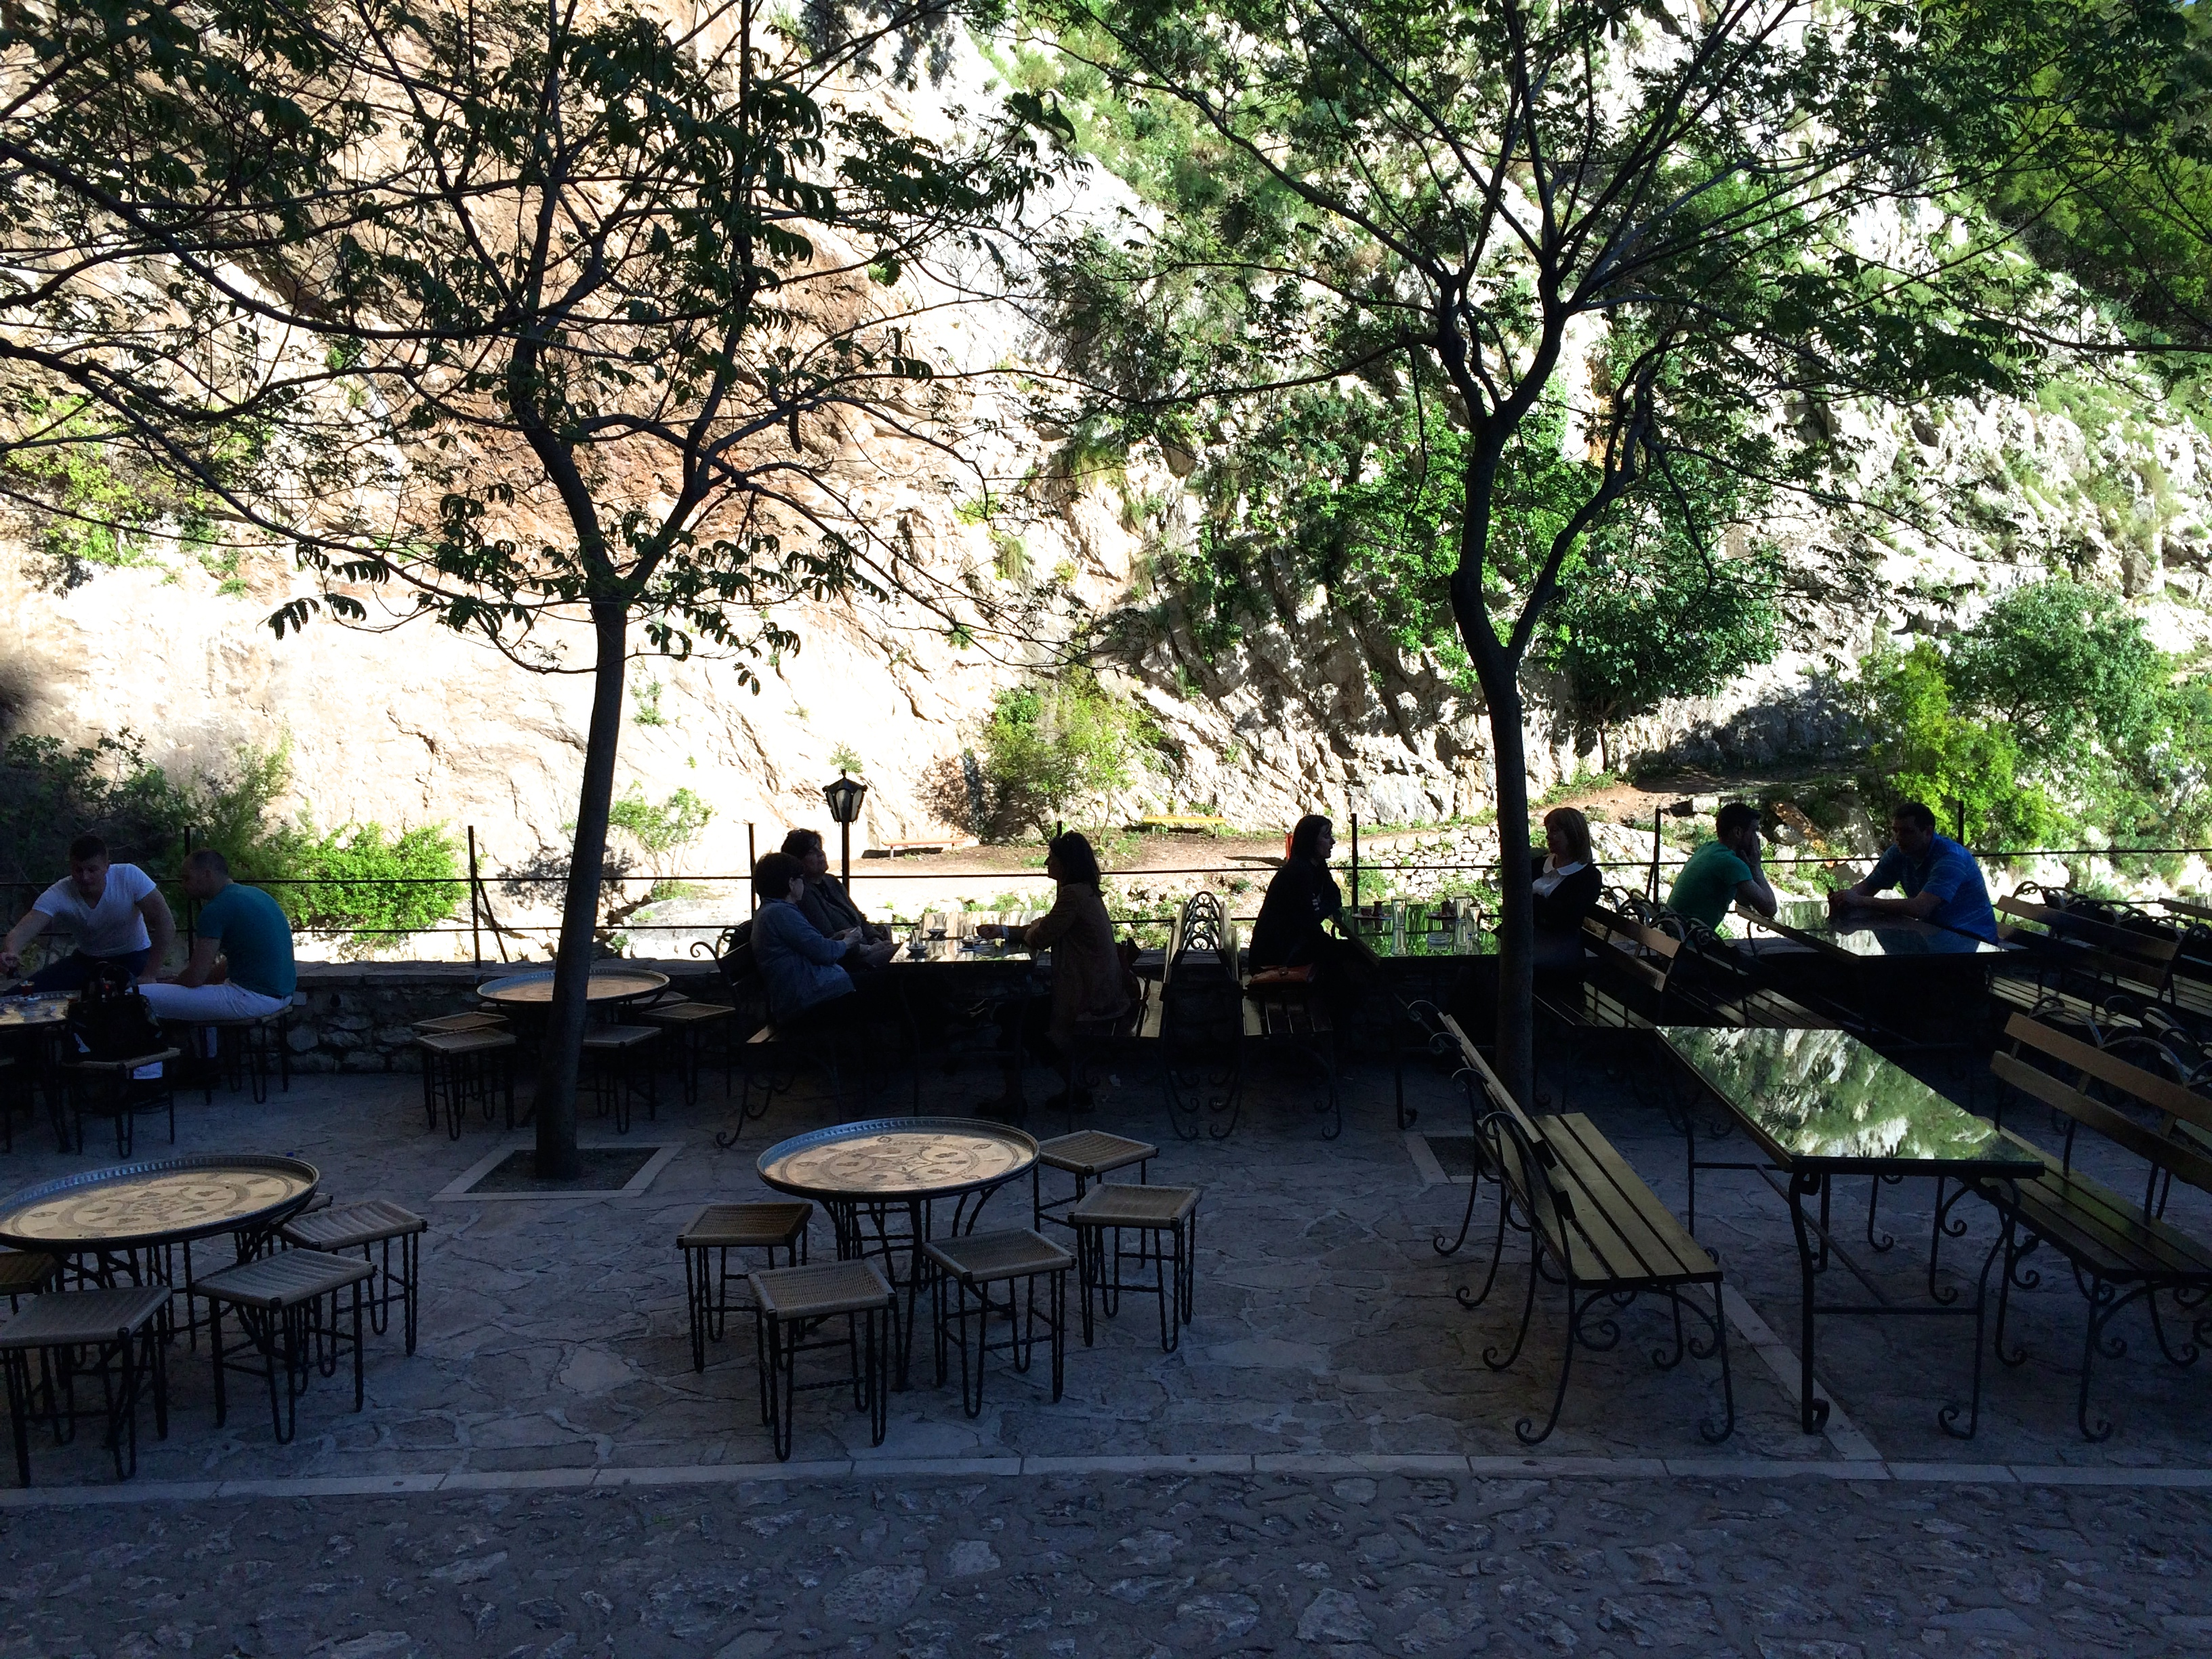 Cafe in front of Blagaj Tekke (Dervish House)